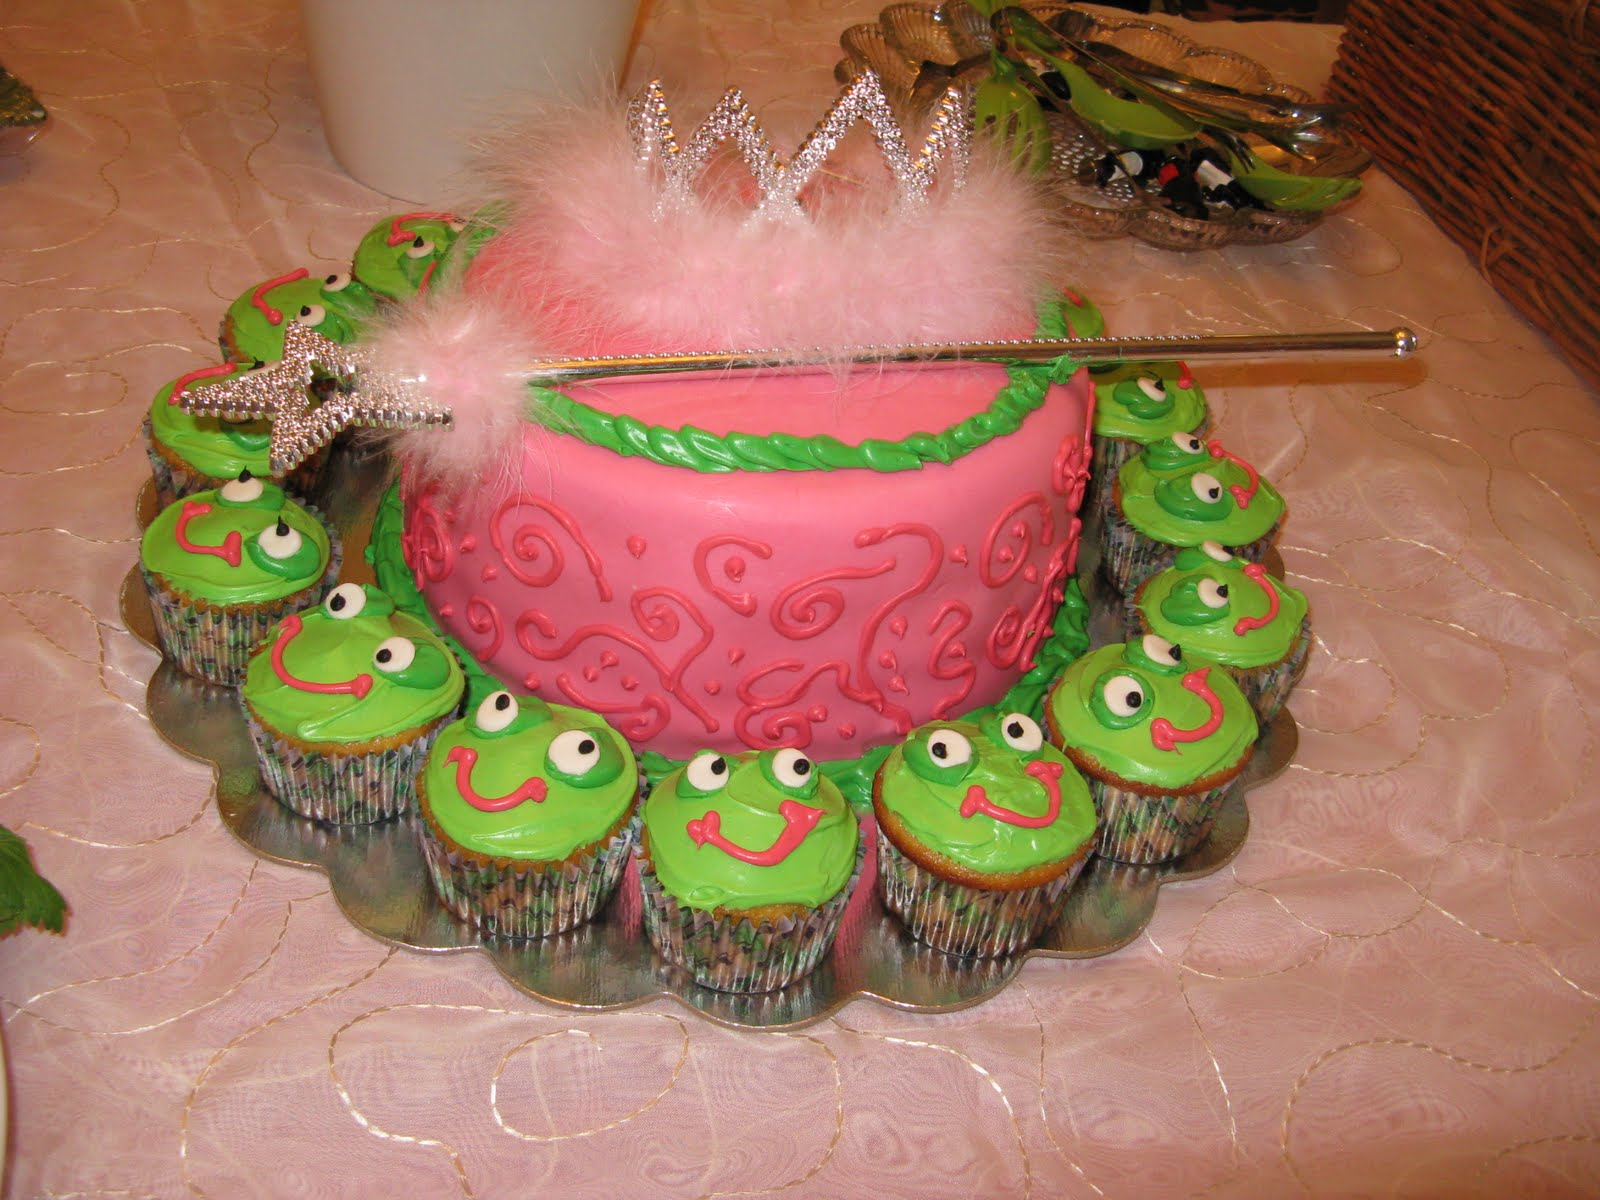 12 Princess And Frog Baby Shower Cakes Photo - The Princess and Frog ...